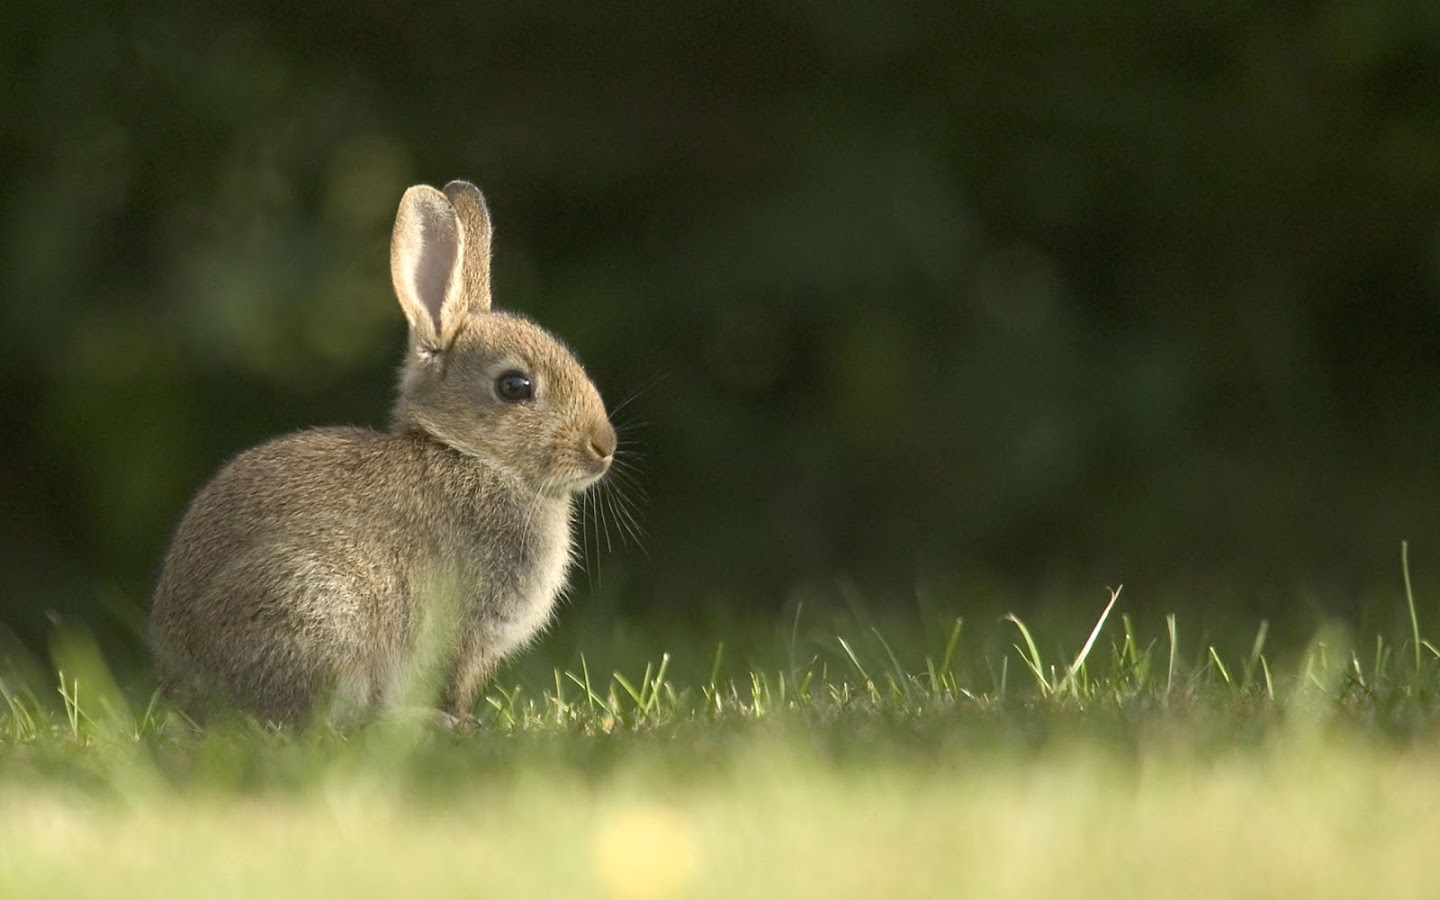 Rabbit Live Wallpaper - Android Apps on Google Play